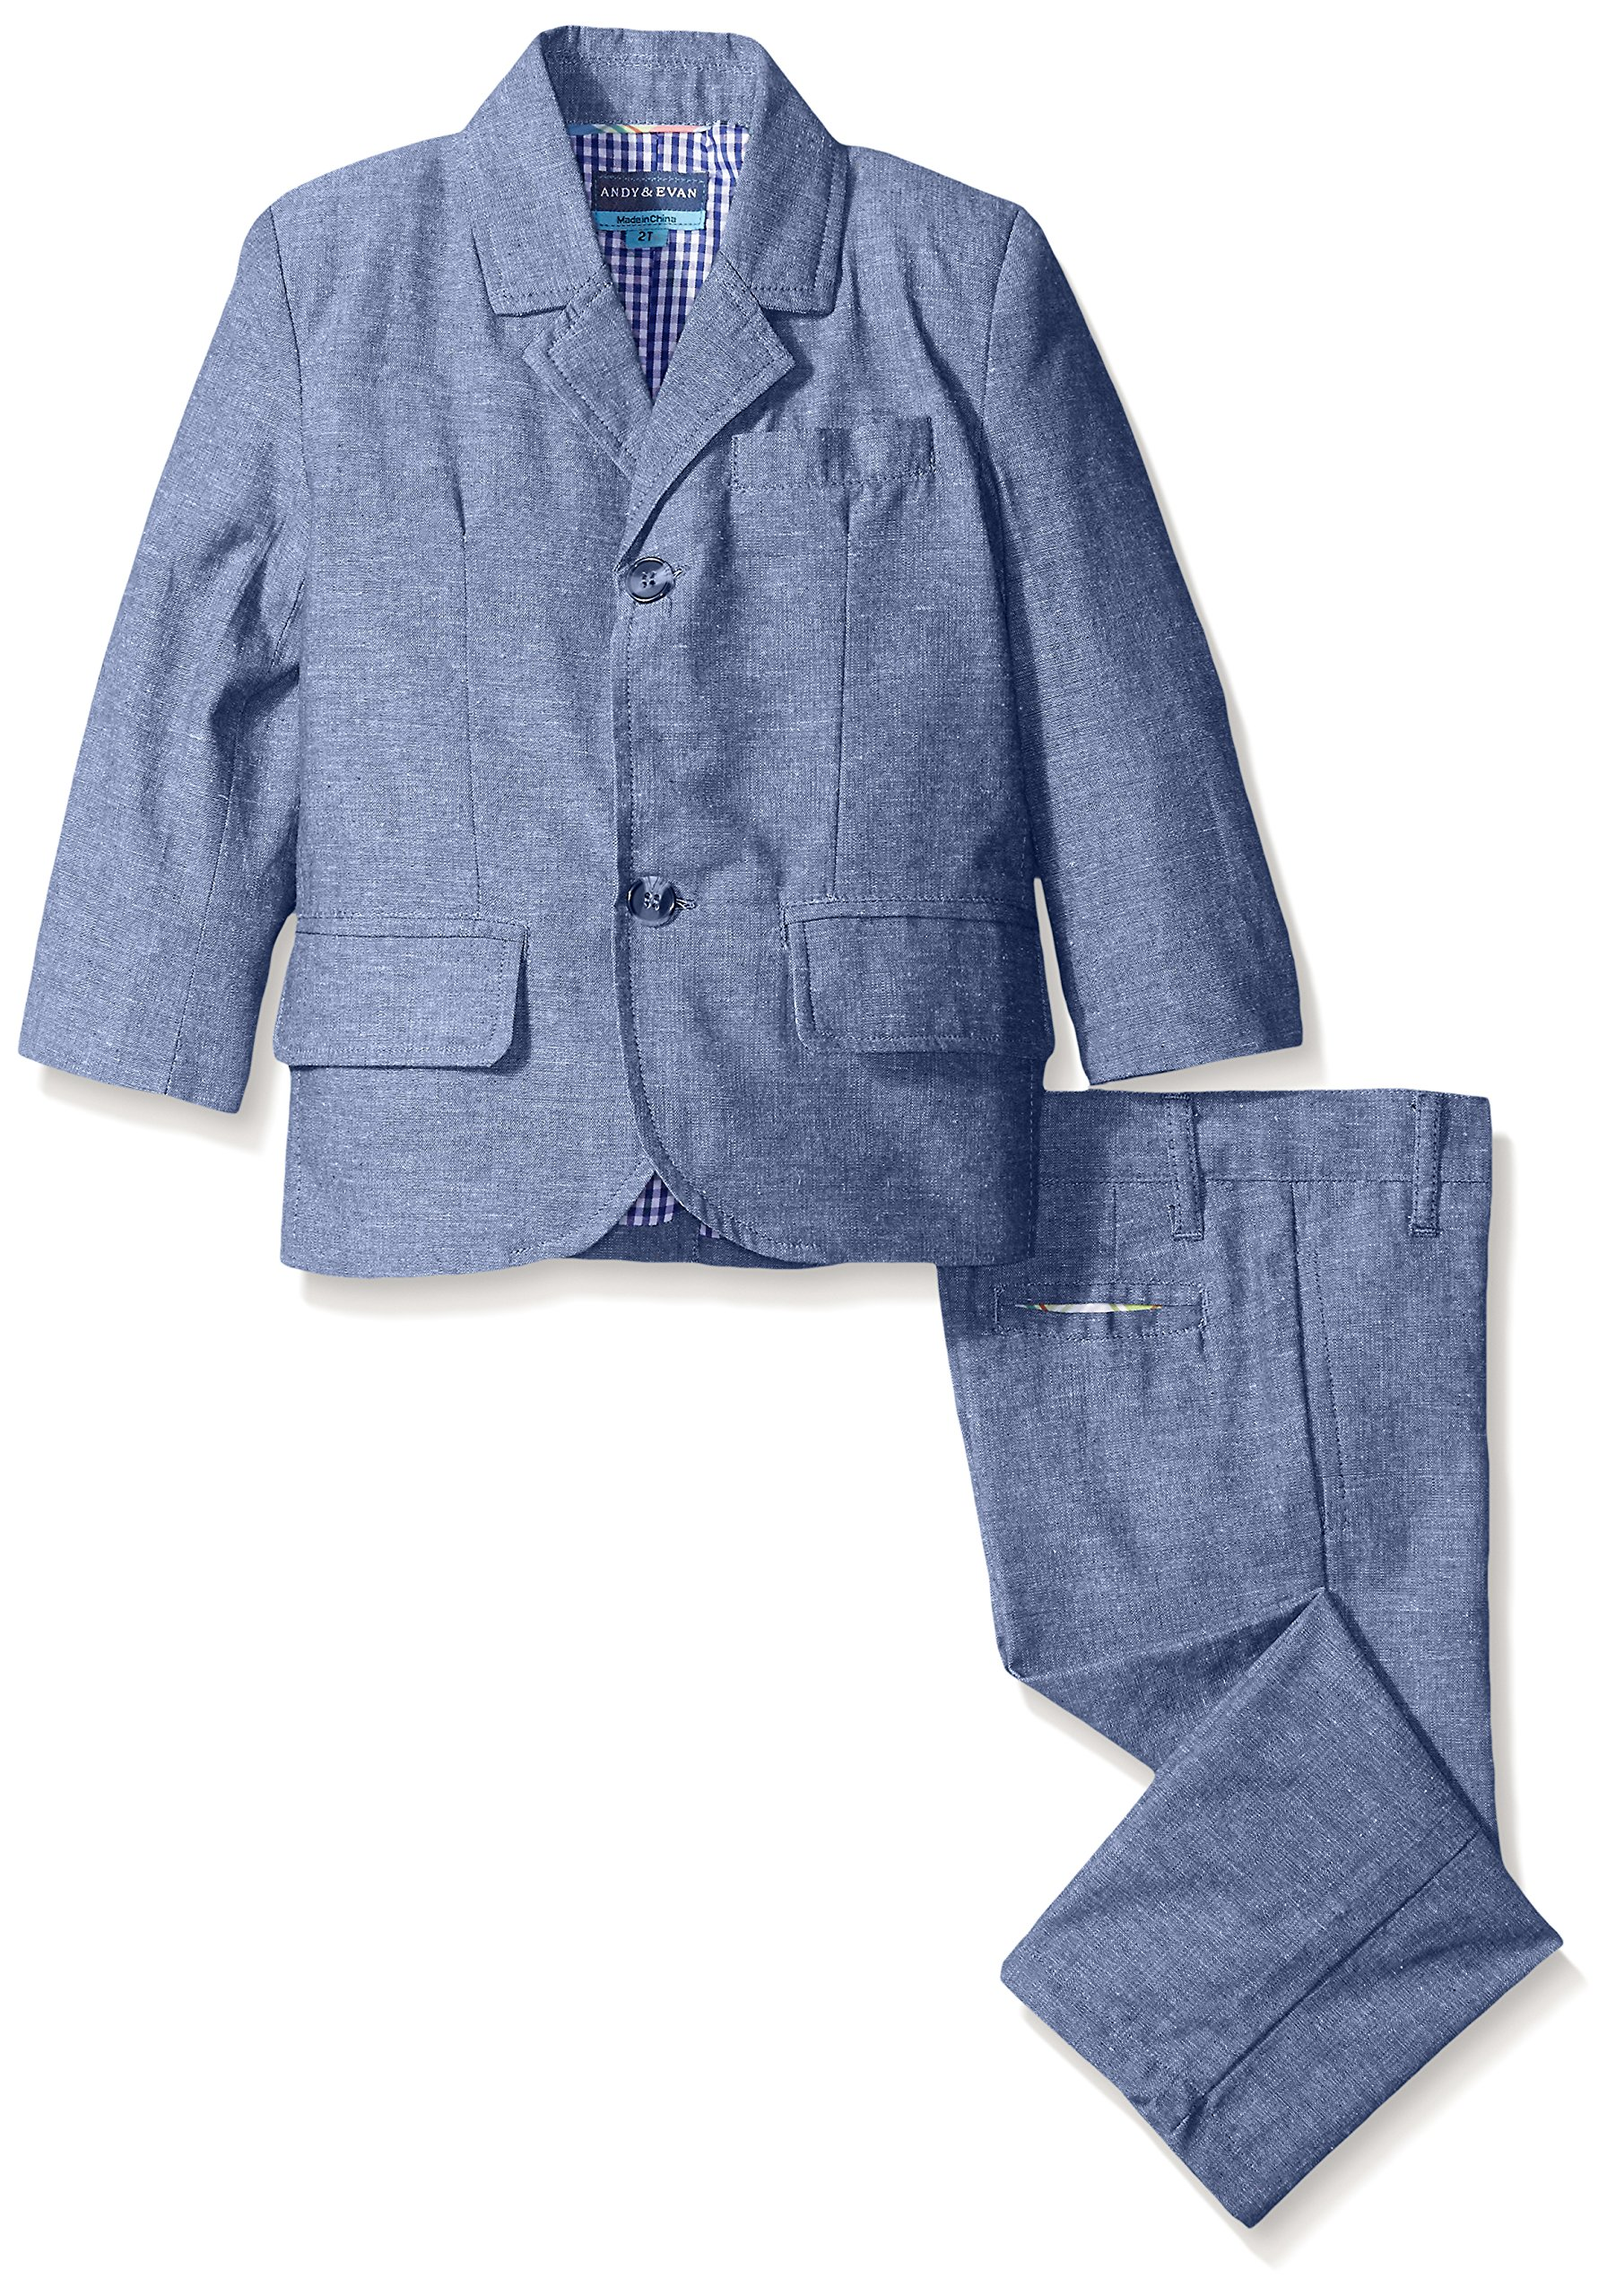 Andy & Evan Toddler Boys Linen Suit Jacket and Pant, Blue, 6 Years